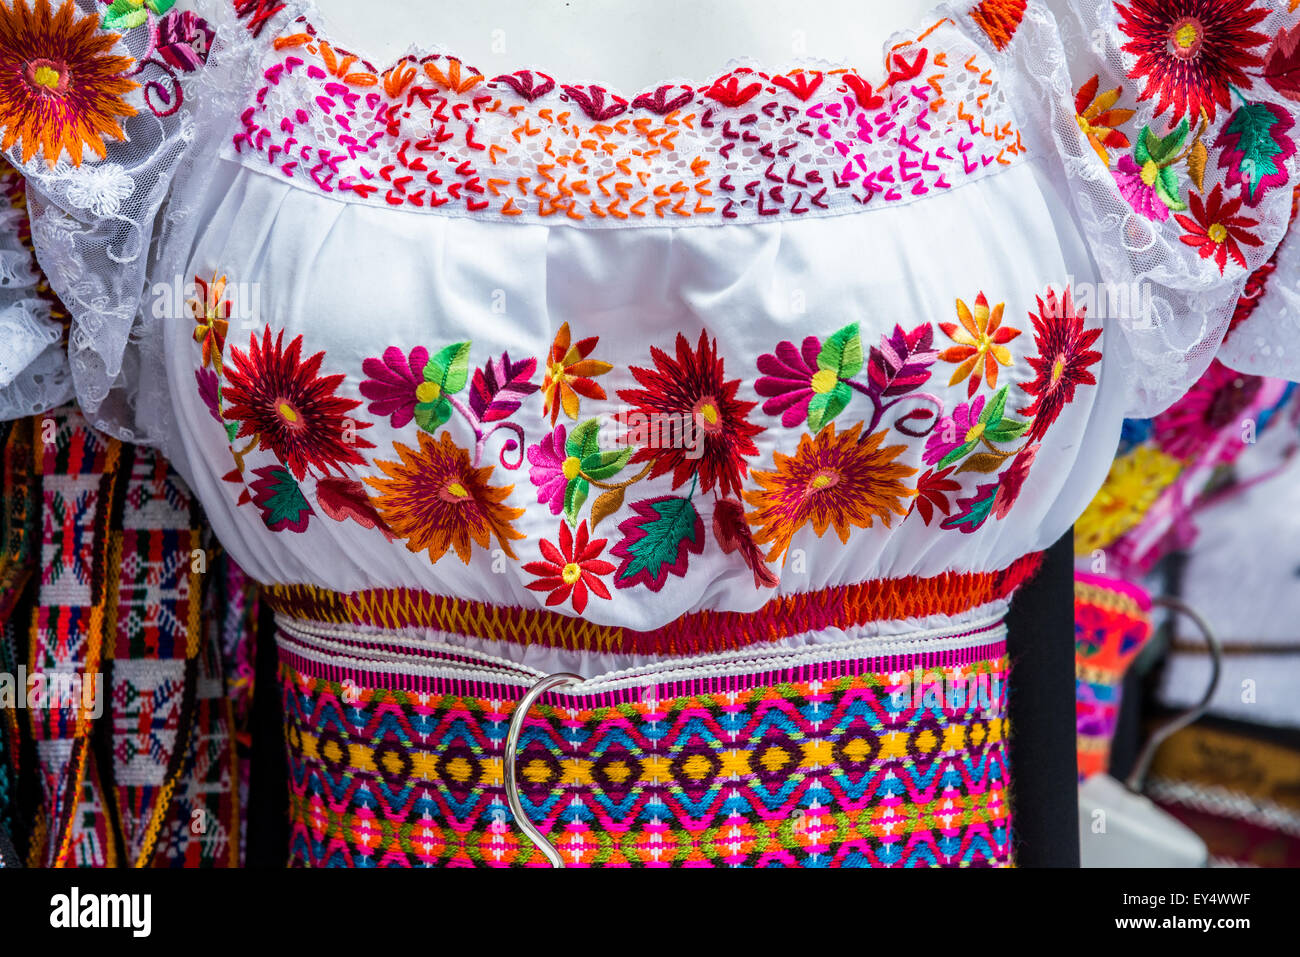 Colorfully embroiled lady's dress of traditional Andean style. Otavalo, Ecuador. - Stock Image